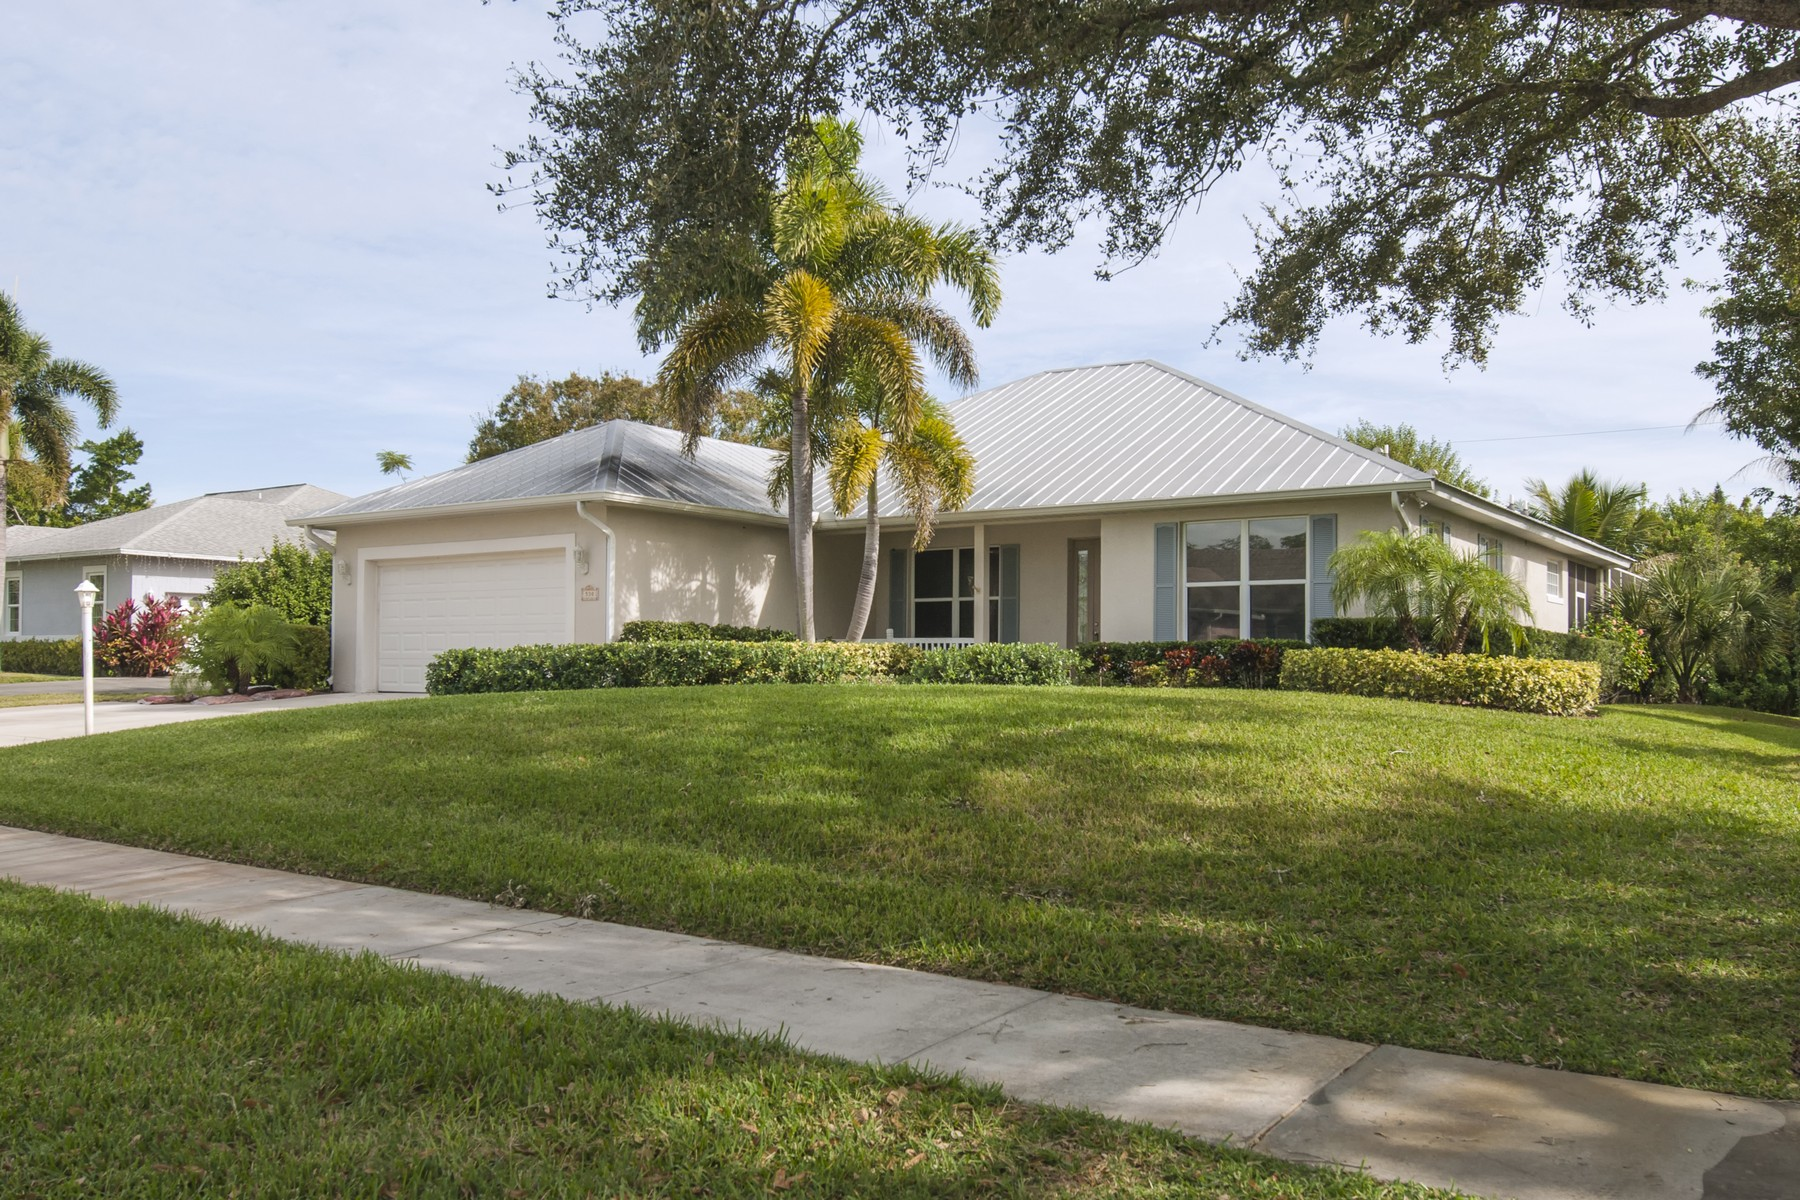 Single Family Home for Sale at Fabulous Four Bedroom Pool Home 530 46th Court Vero Beach, Florida 32968 United States